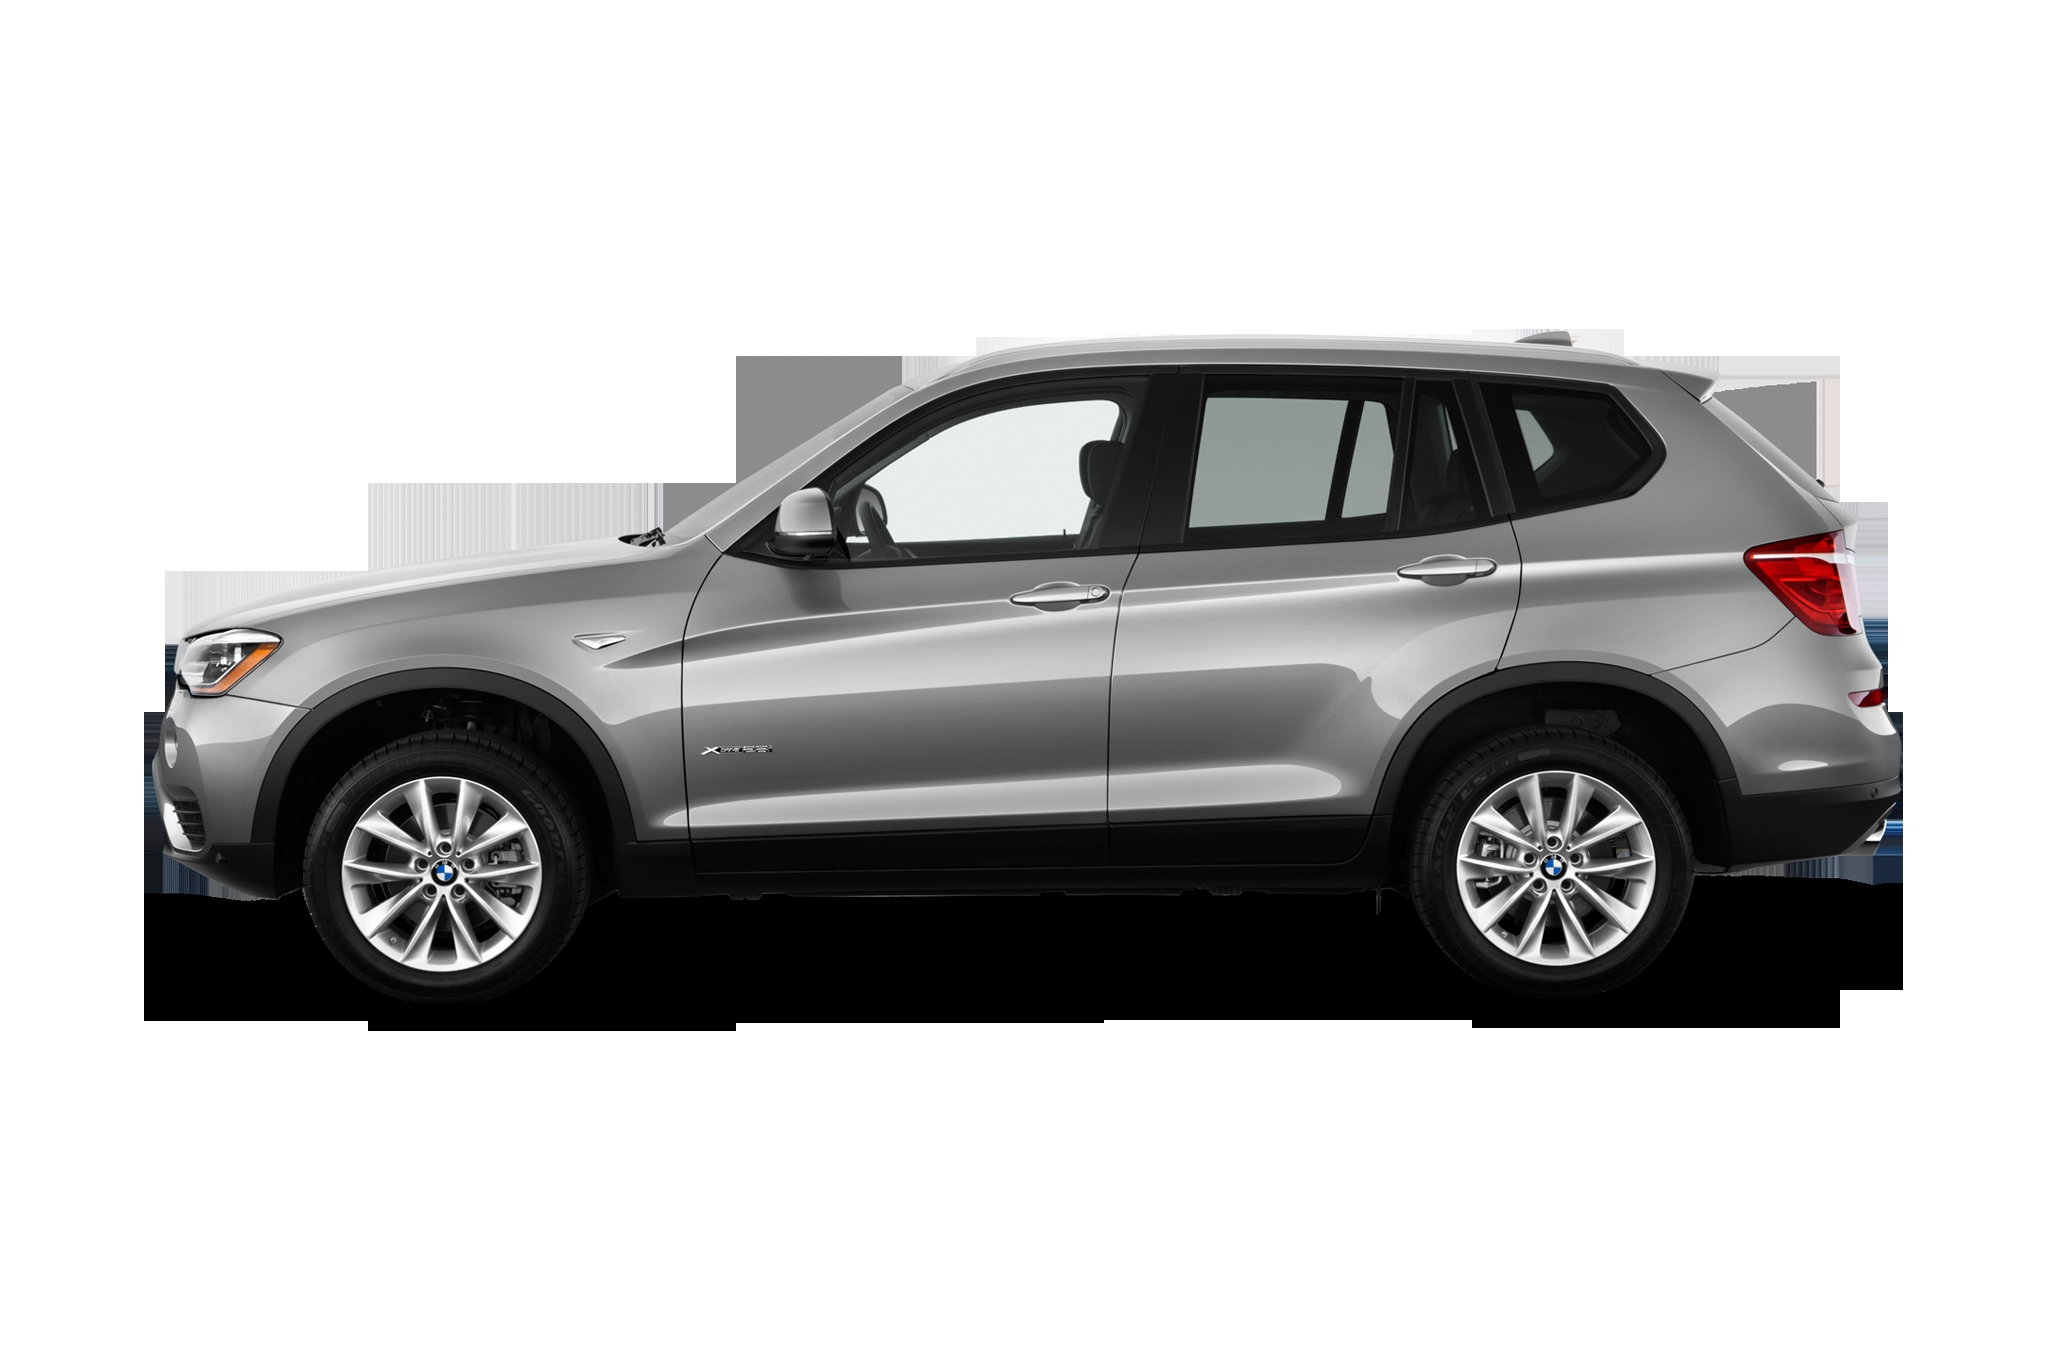 2017 bmw x3 reviews and rating motor trend bmw x3 invoice